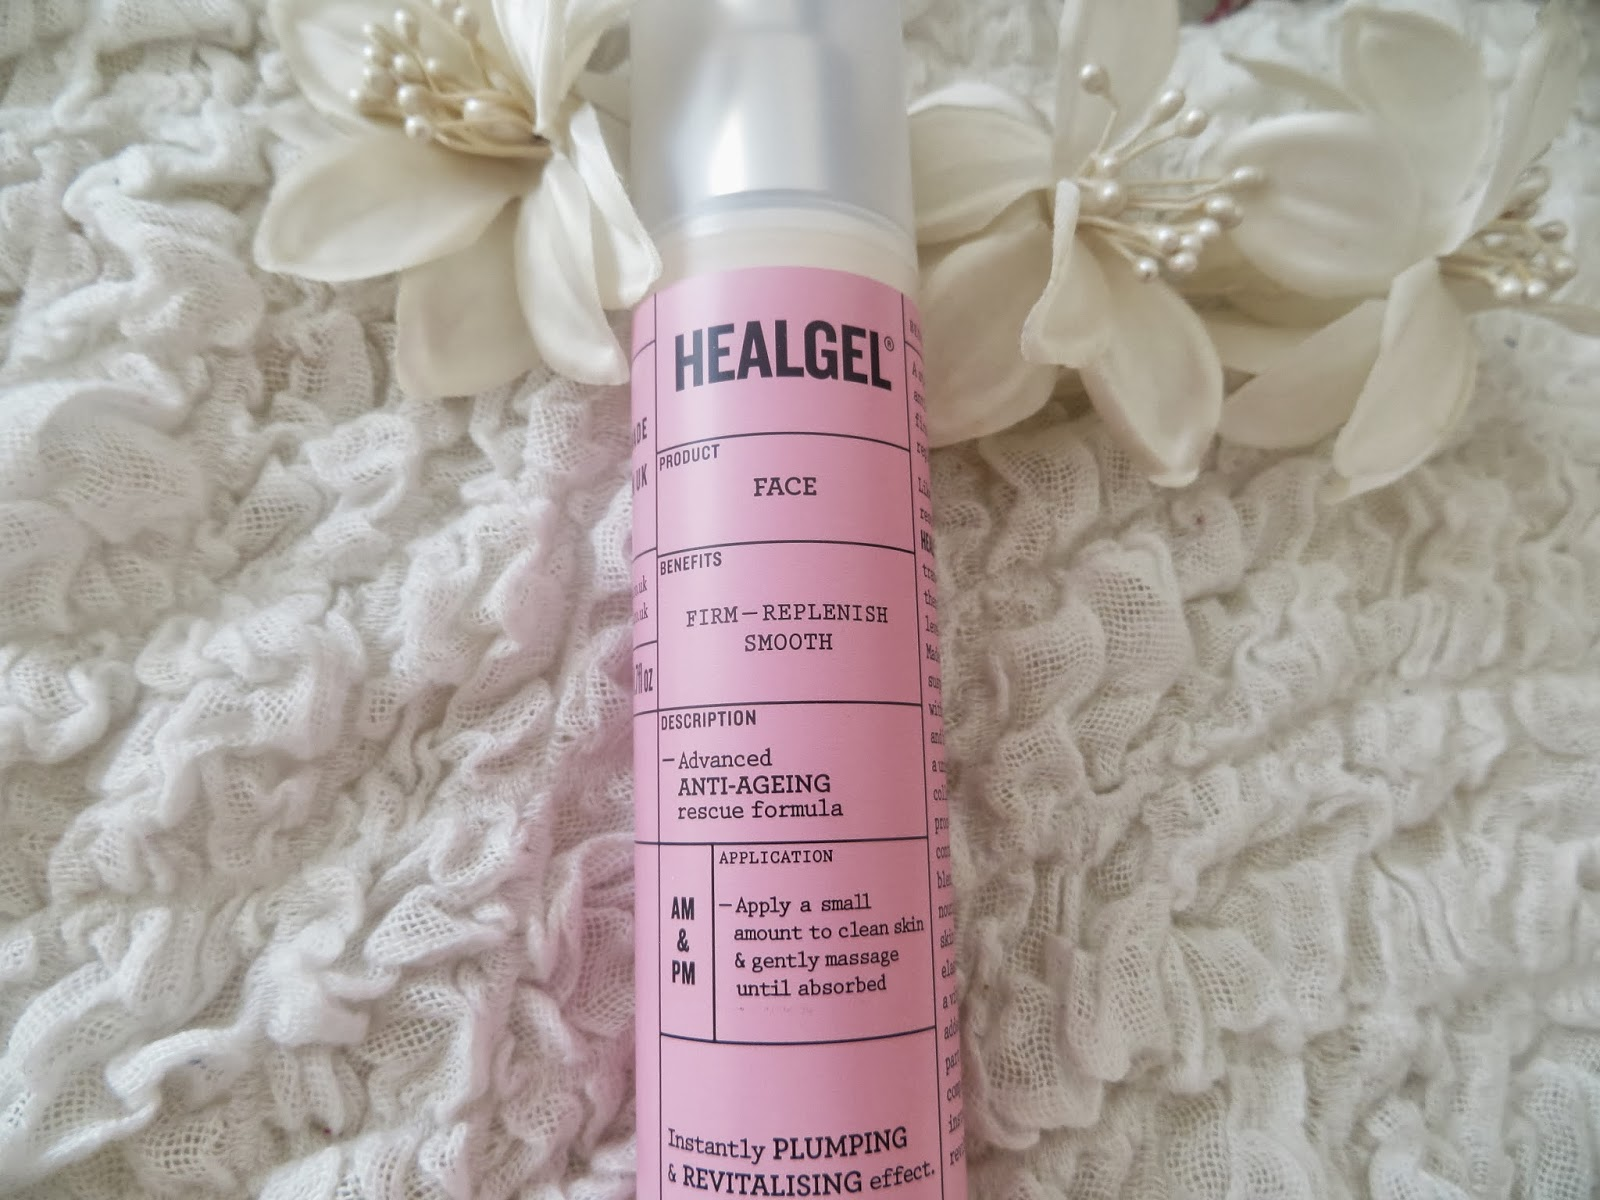 Healgel, Review, Skincare, Pink, Plastic surgery, Face, Gel, Primer, Omega oil, Lavender, Anti-ageing, product, celebrity, famous, dermatologist